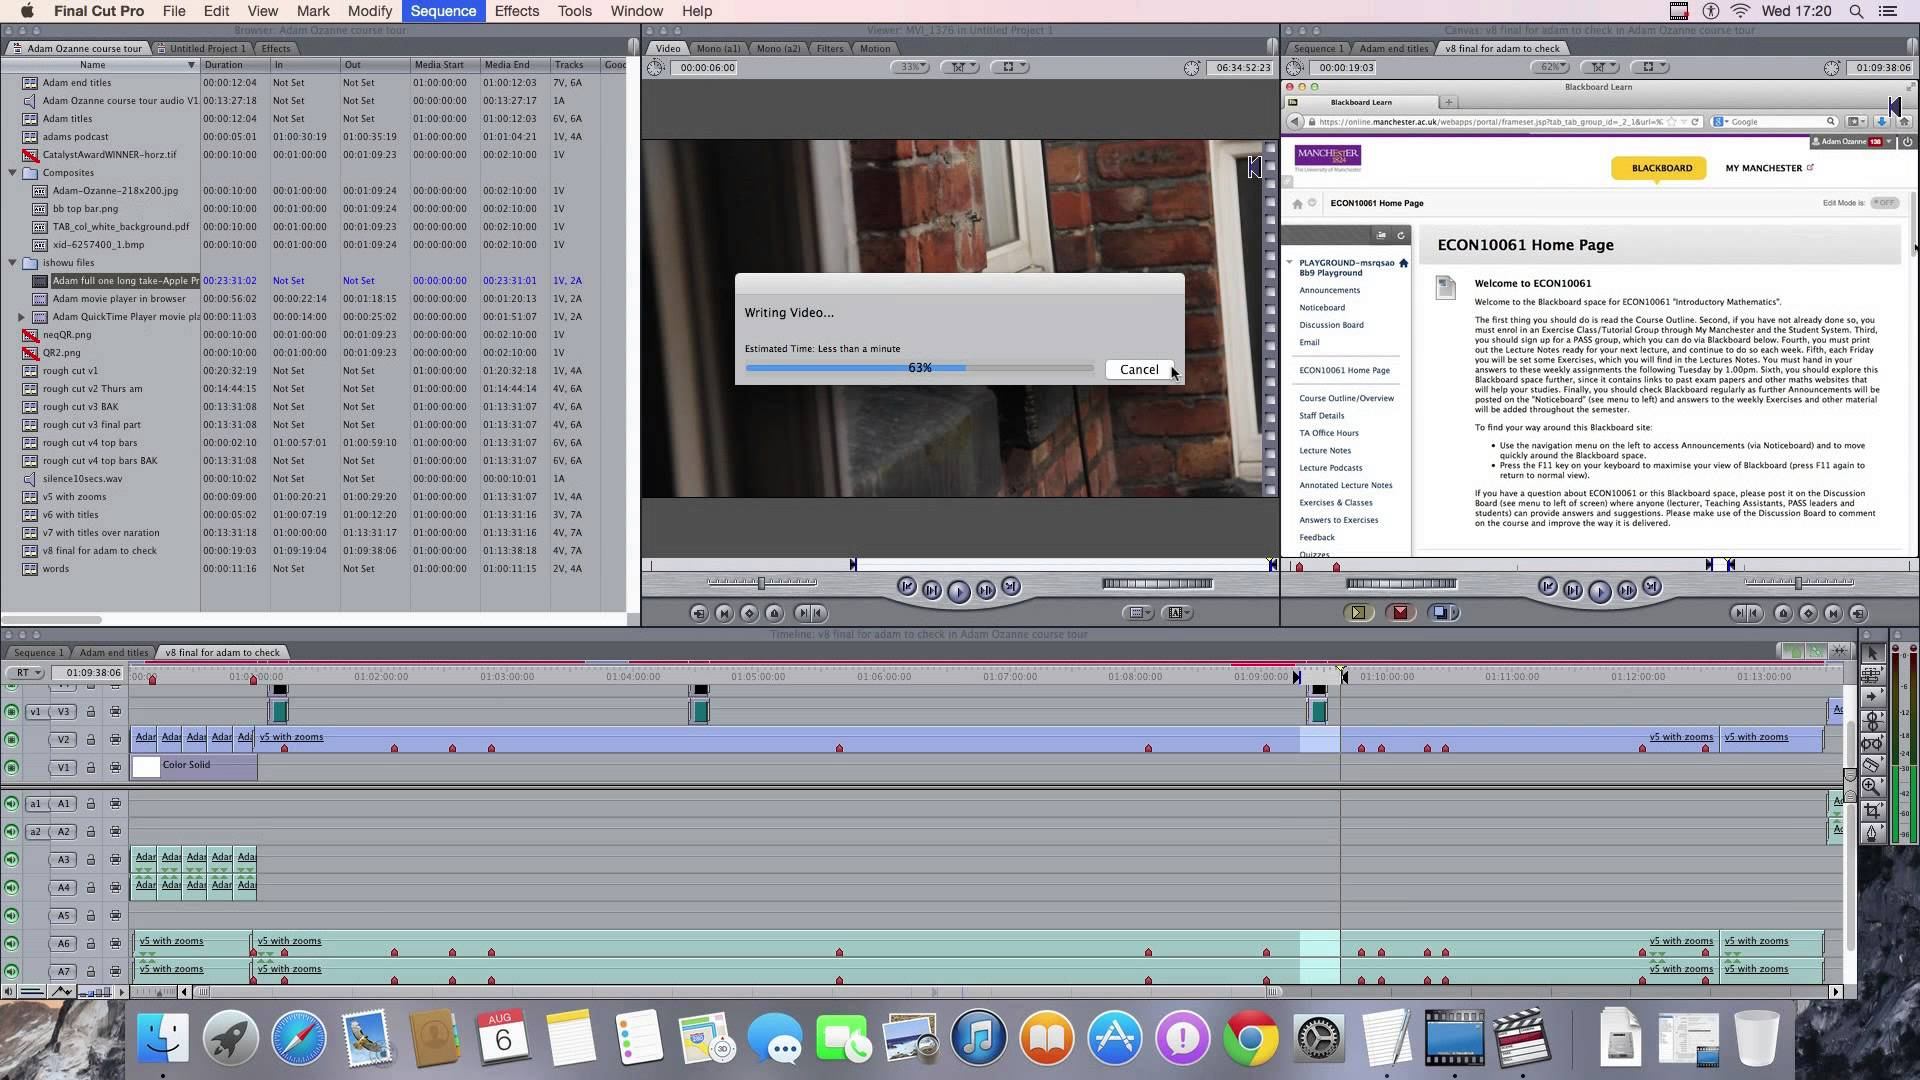 The end of Final Cut Pro 7 has come